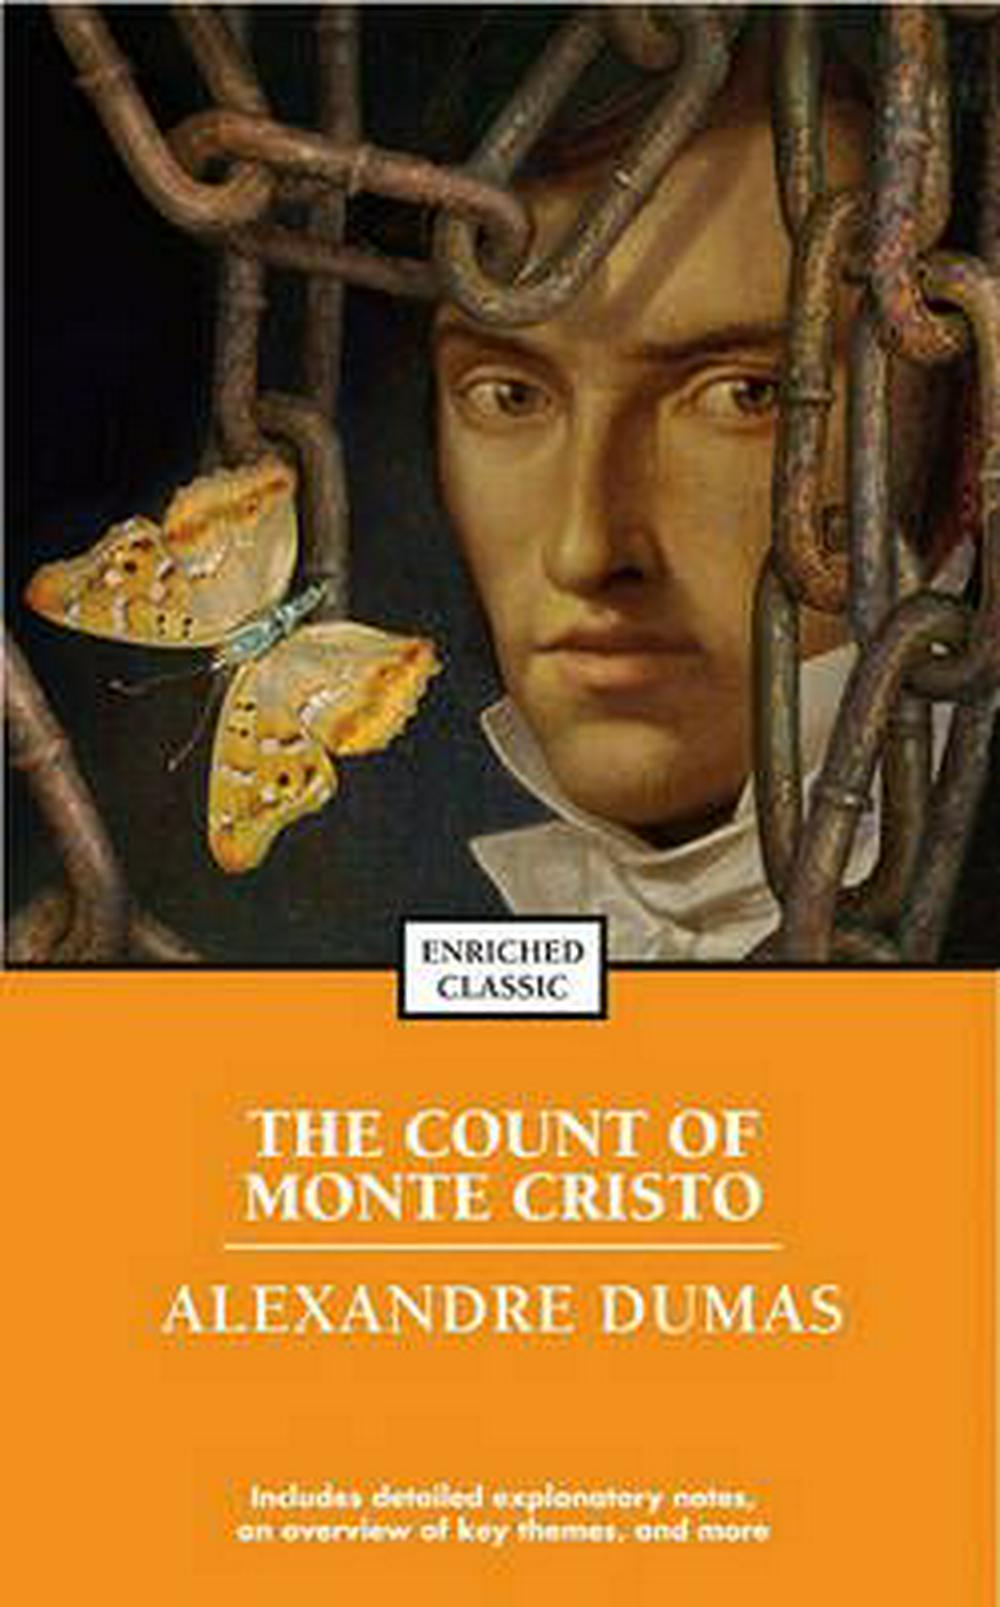 The Count of Monte Cristo by Alexandre Dumas, ISBN: 9780743487559